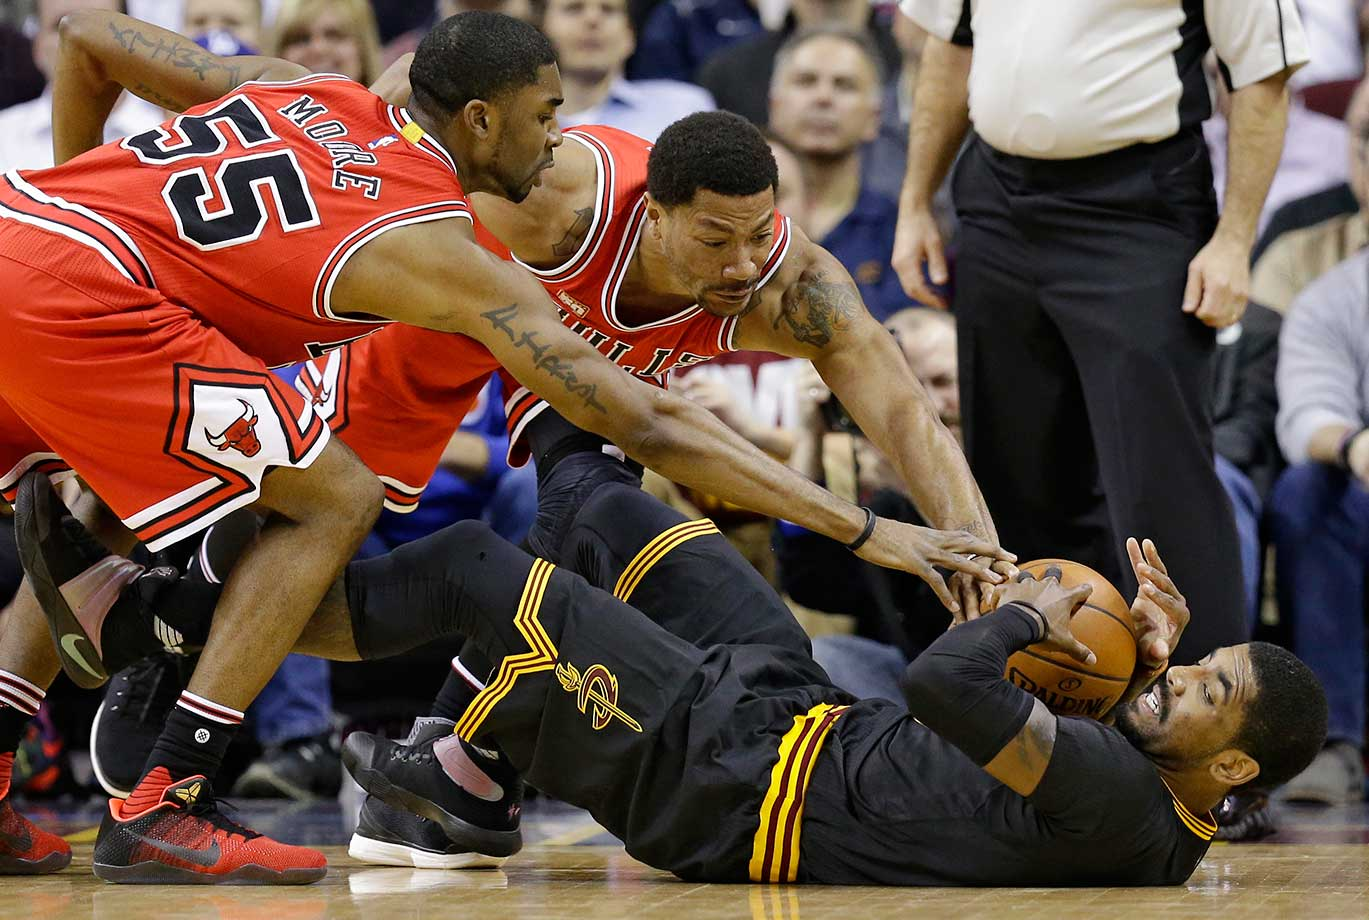 Chicago's E'Twaun Moore, left, and Derrick Rose put pressure on Kyrie Irving of Cleveland.